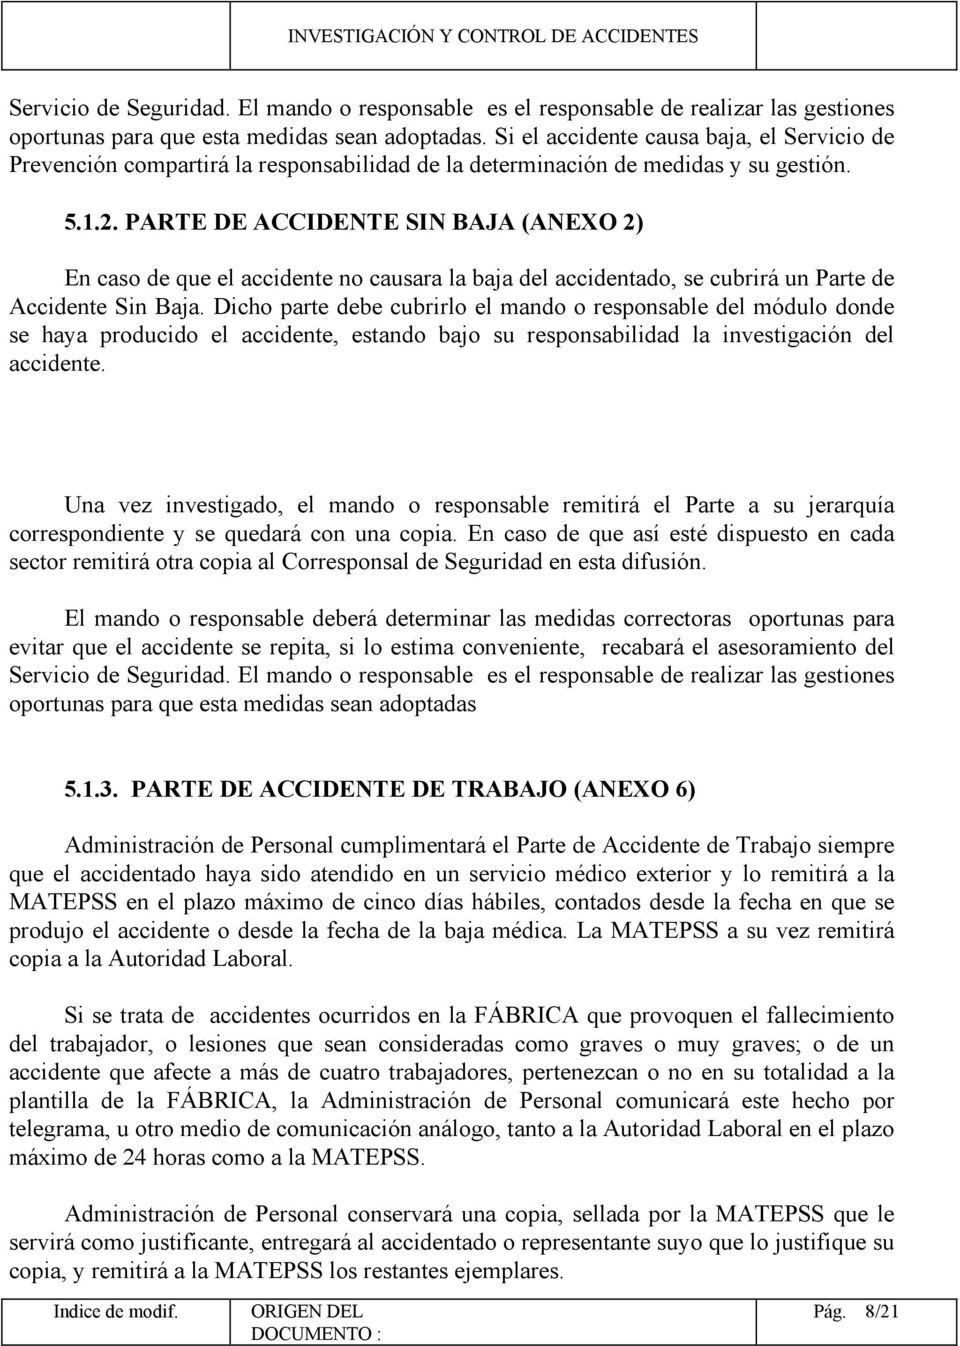 PARTE DE ACCIDENTE SIN BAJA (ANEXO 2) En caso de que el accidente no causara la baja del accidentado, se cubrirá un Parte de Accidente Sin Baja.